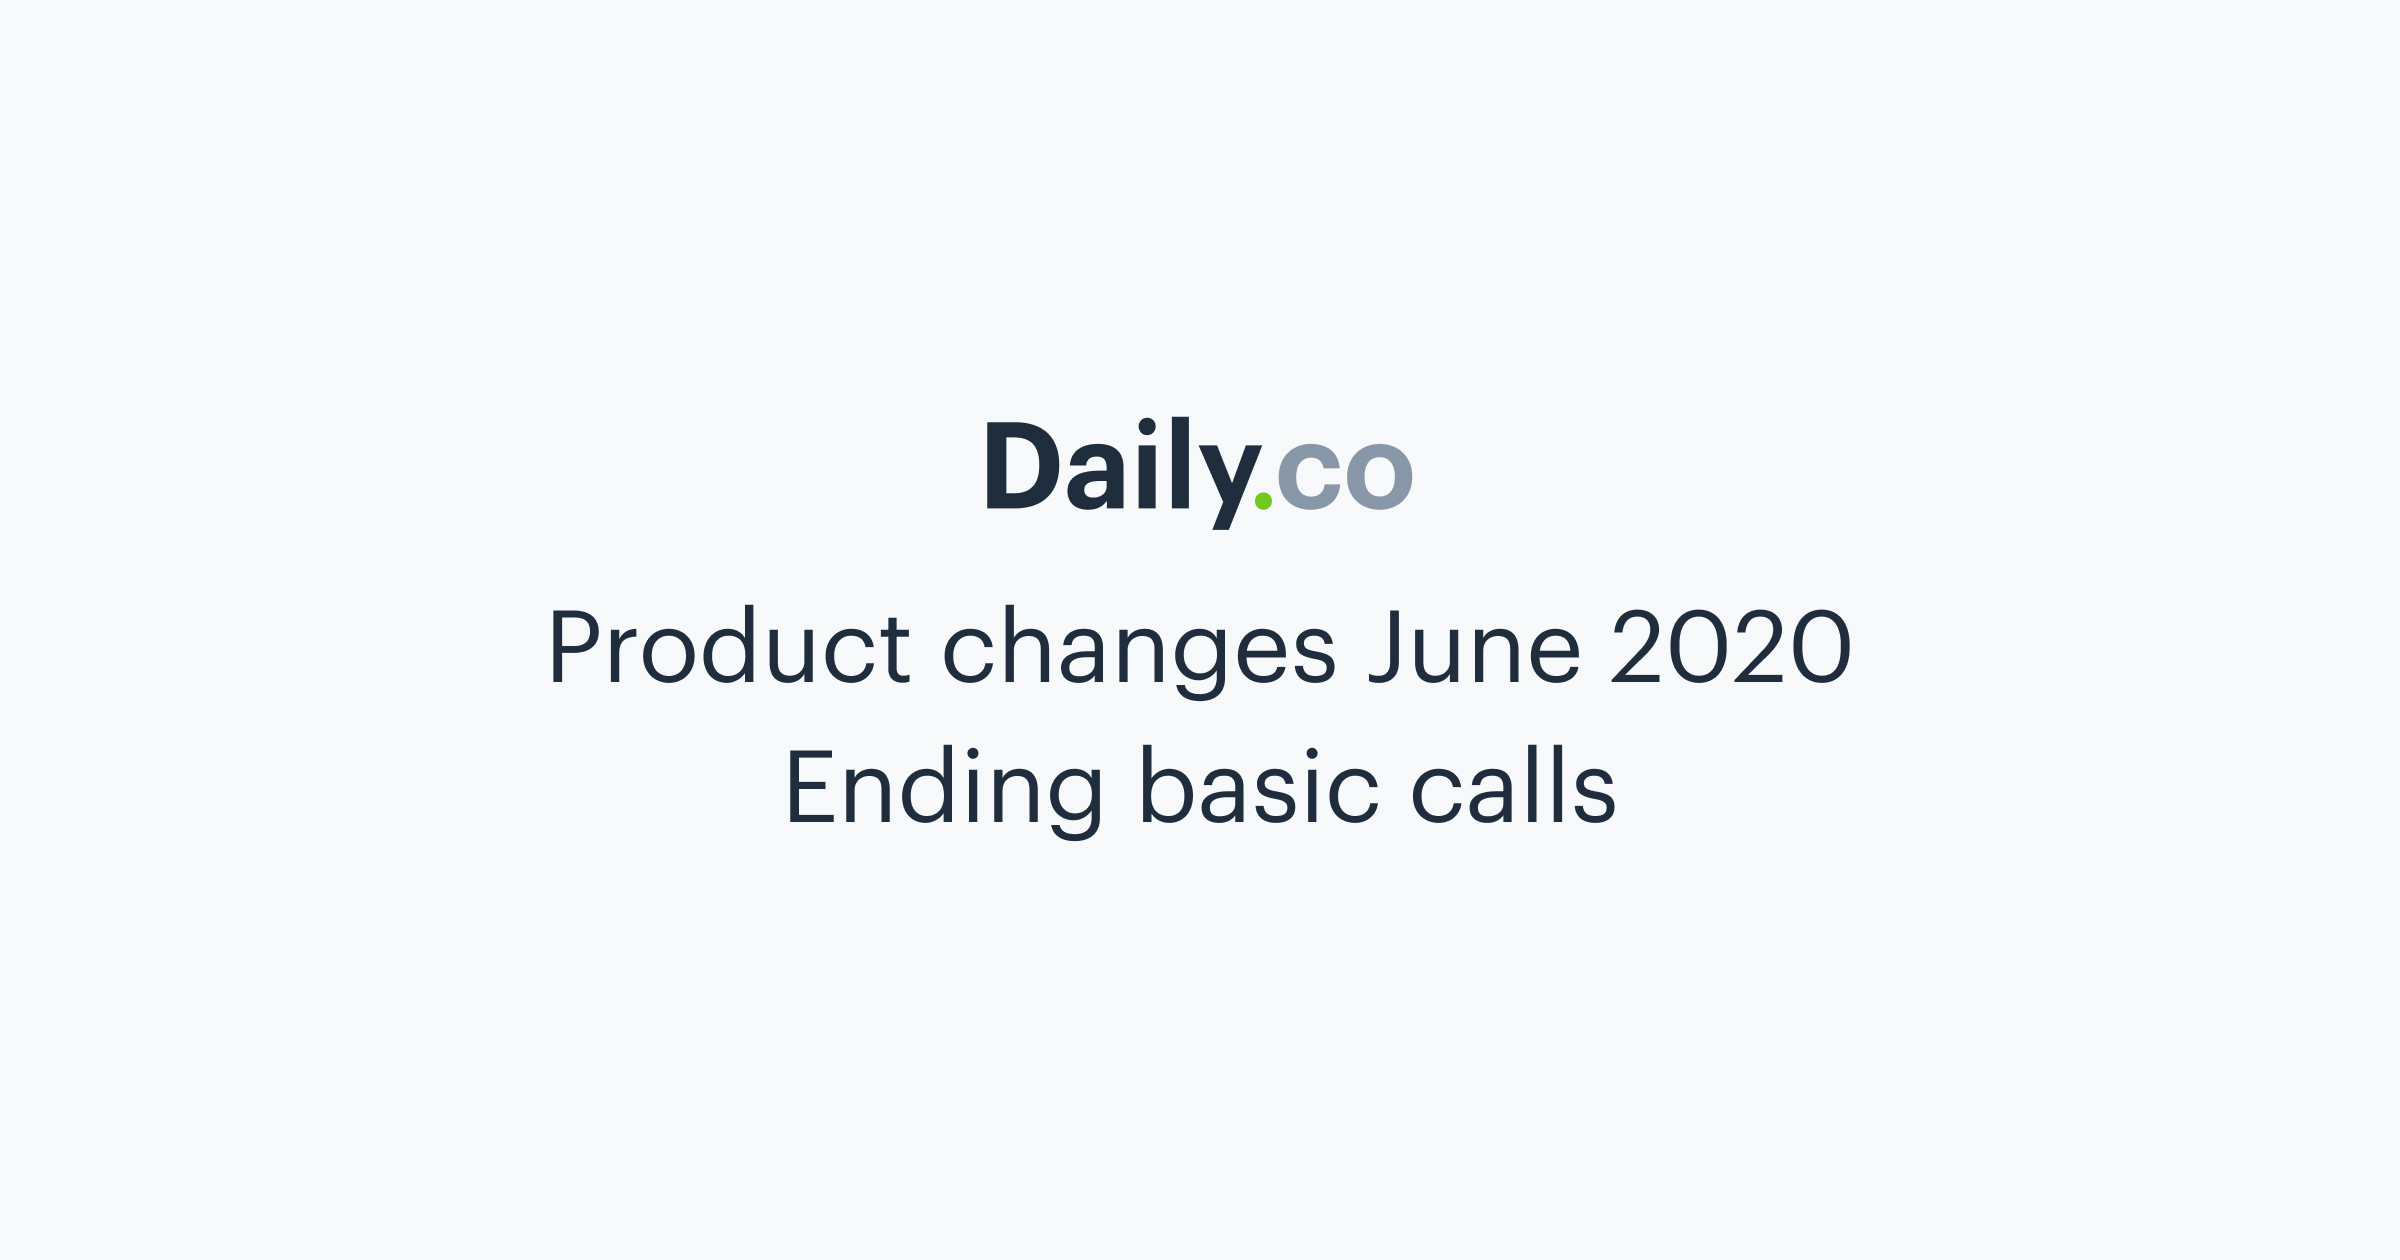 Ending our basic calls product in June 2020